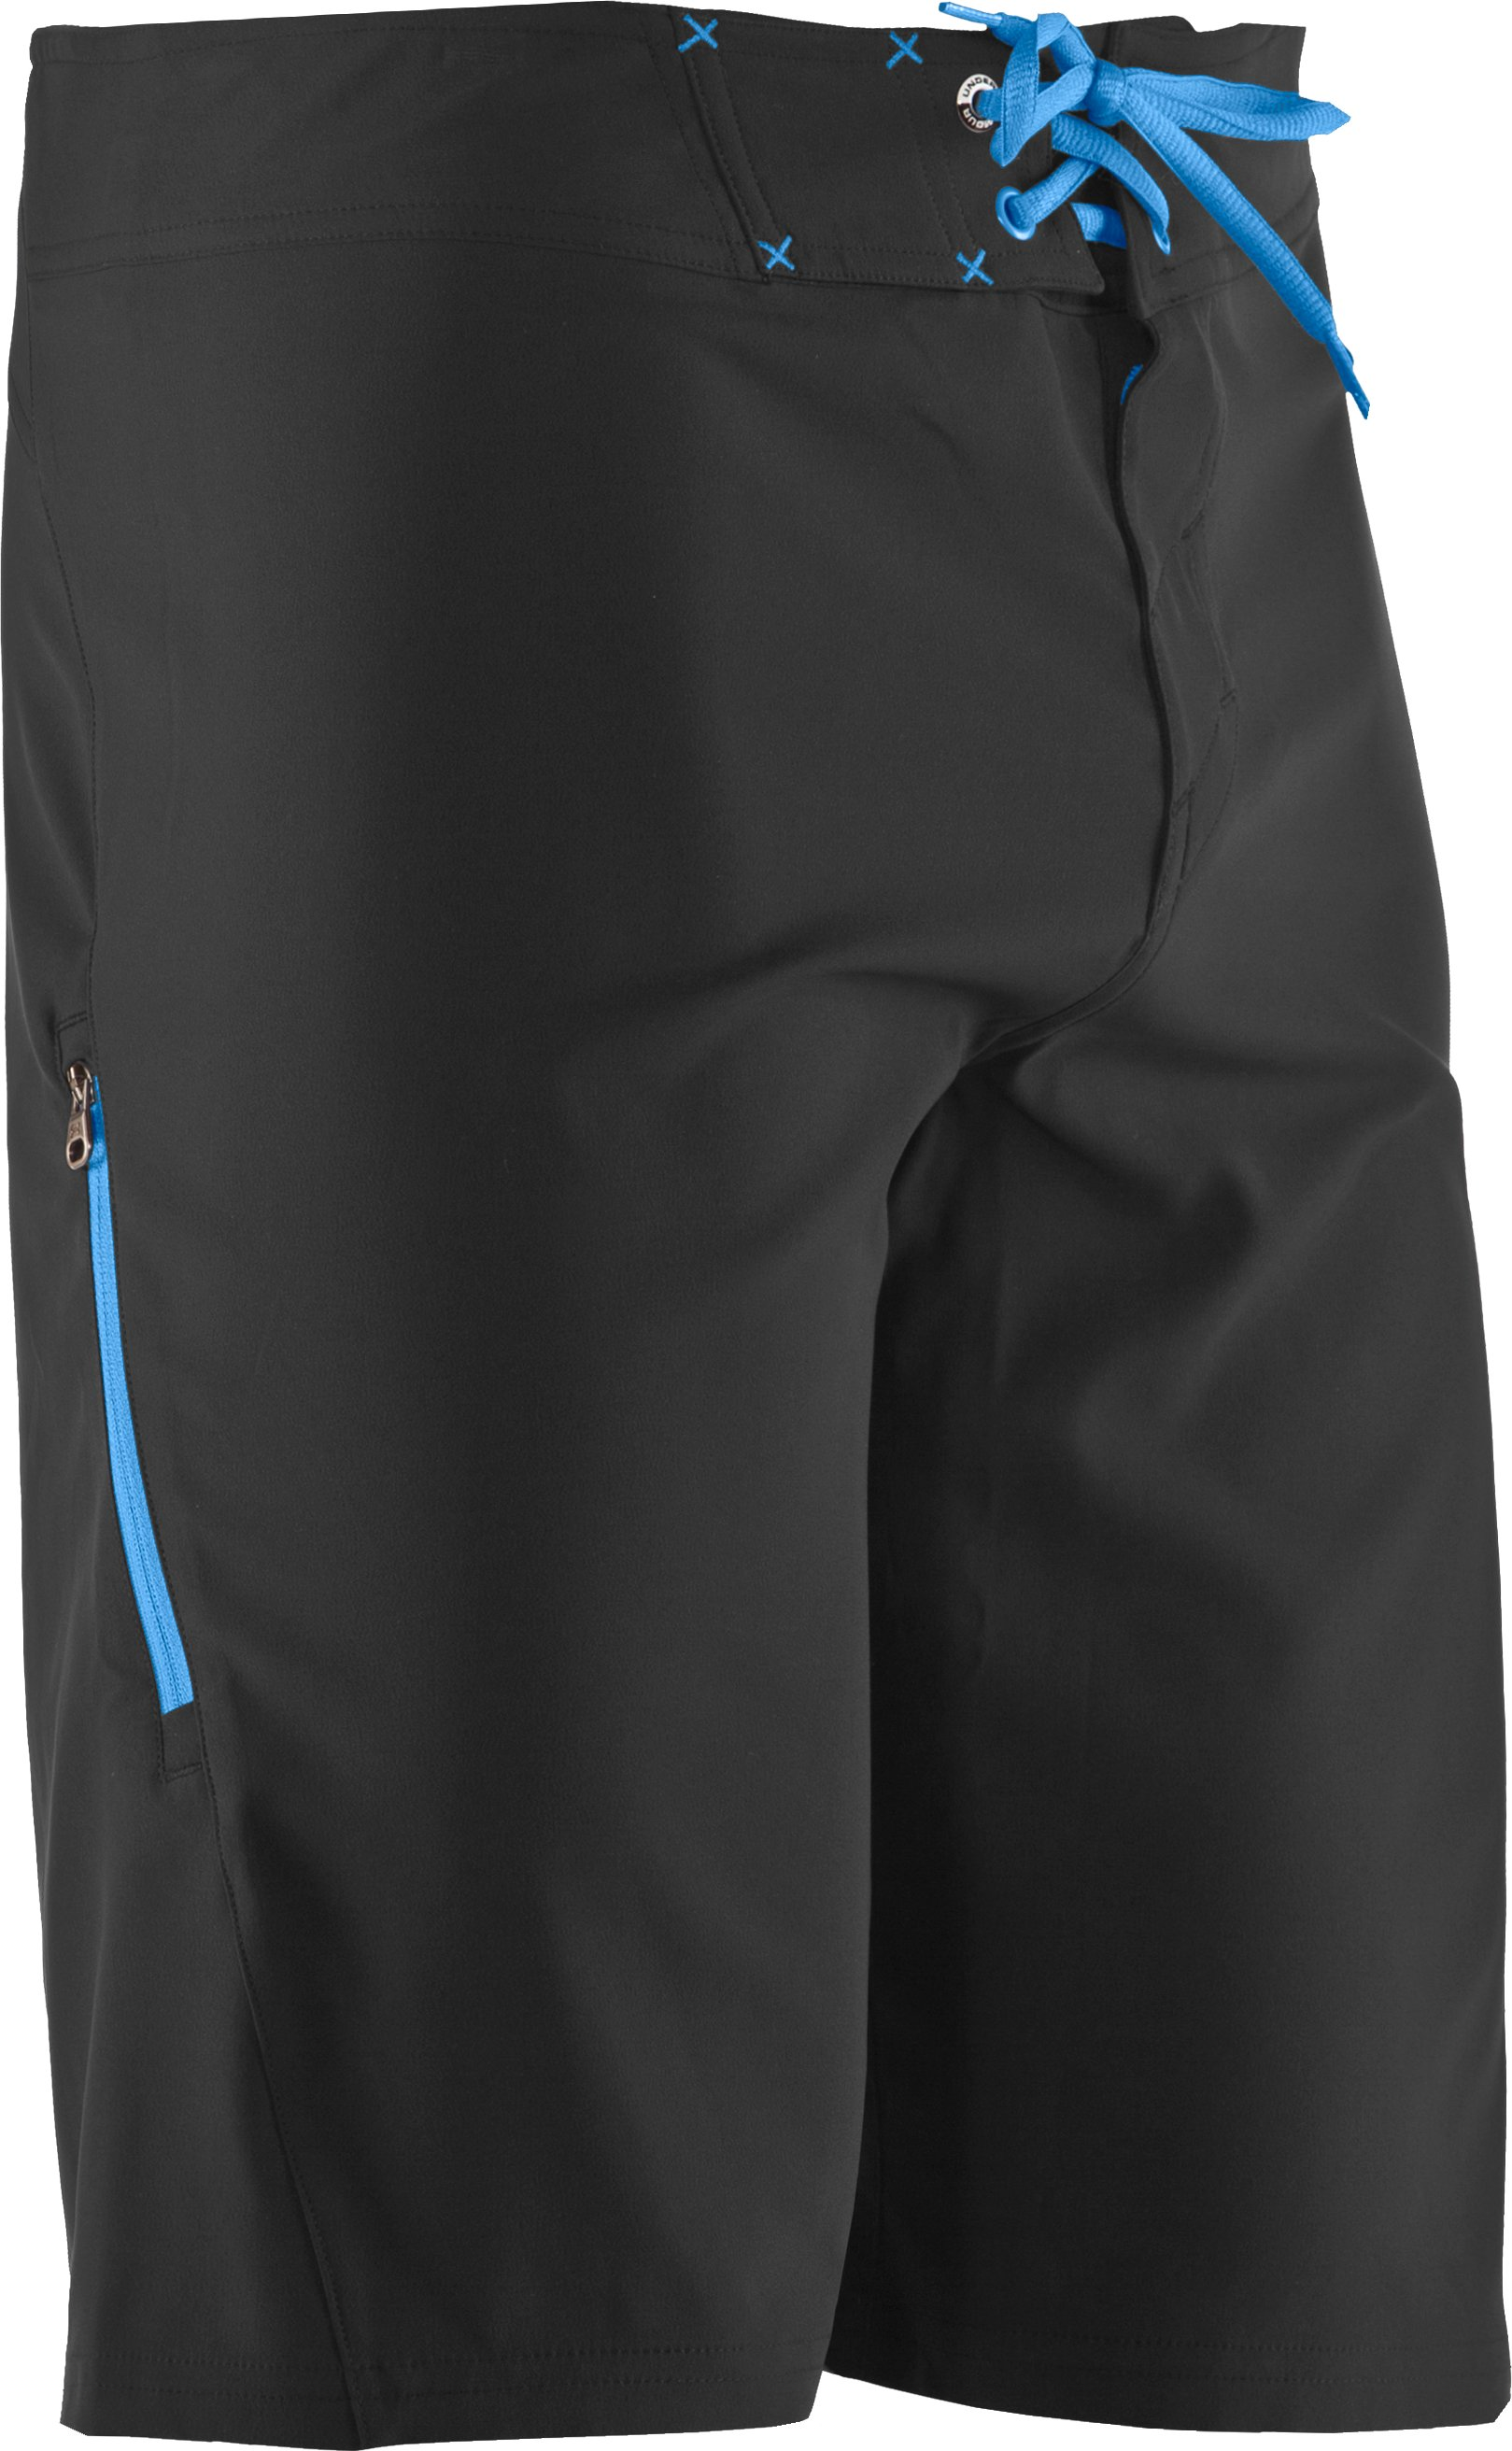 Men's UA Courier Board Shorts, Black